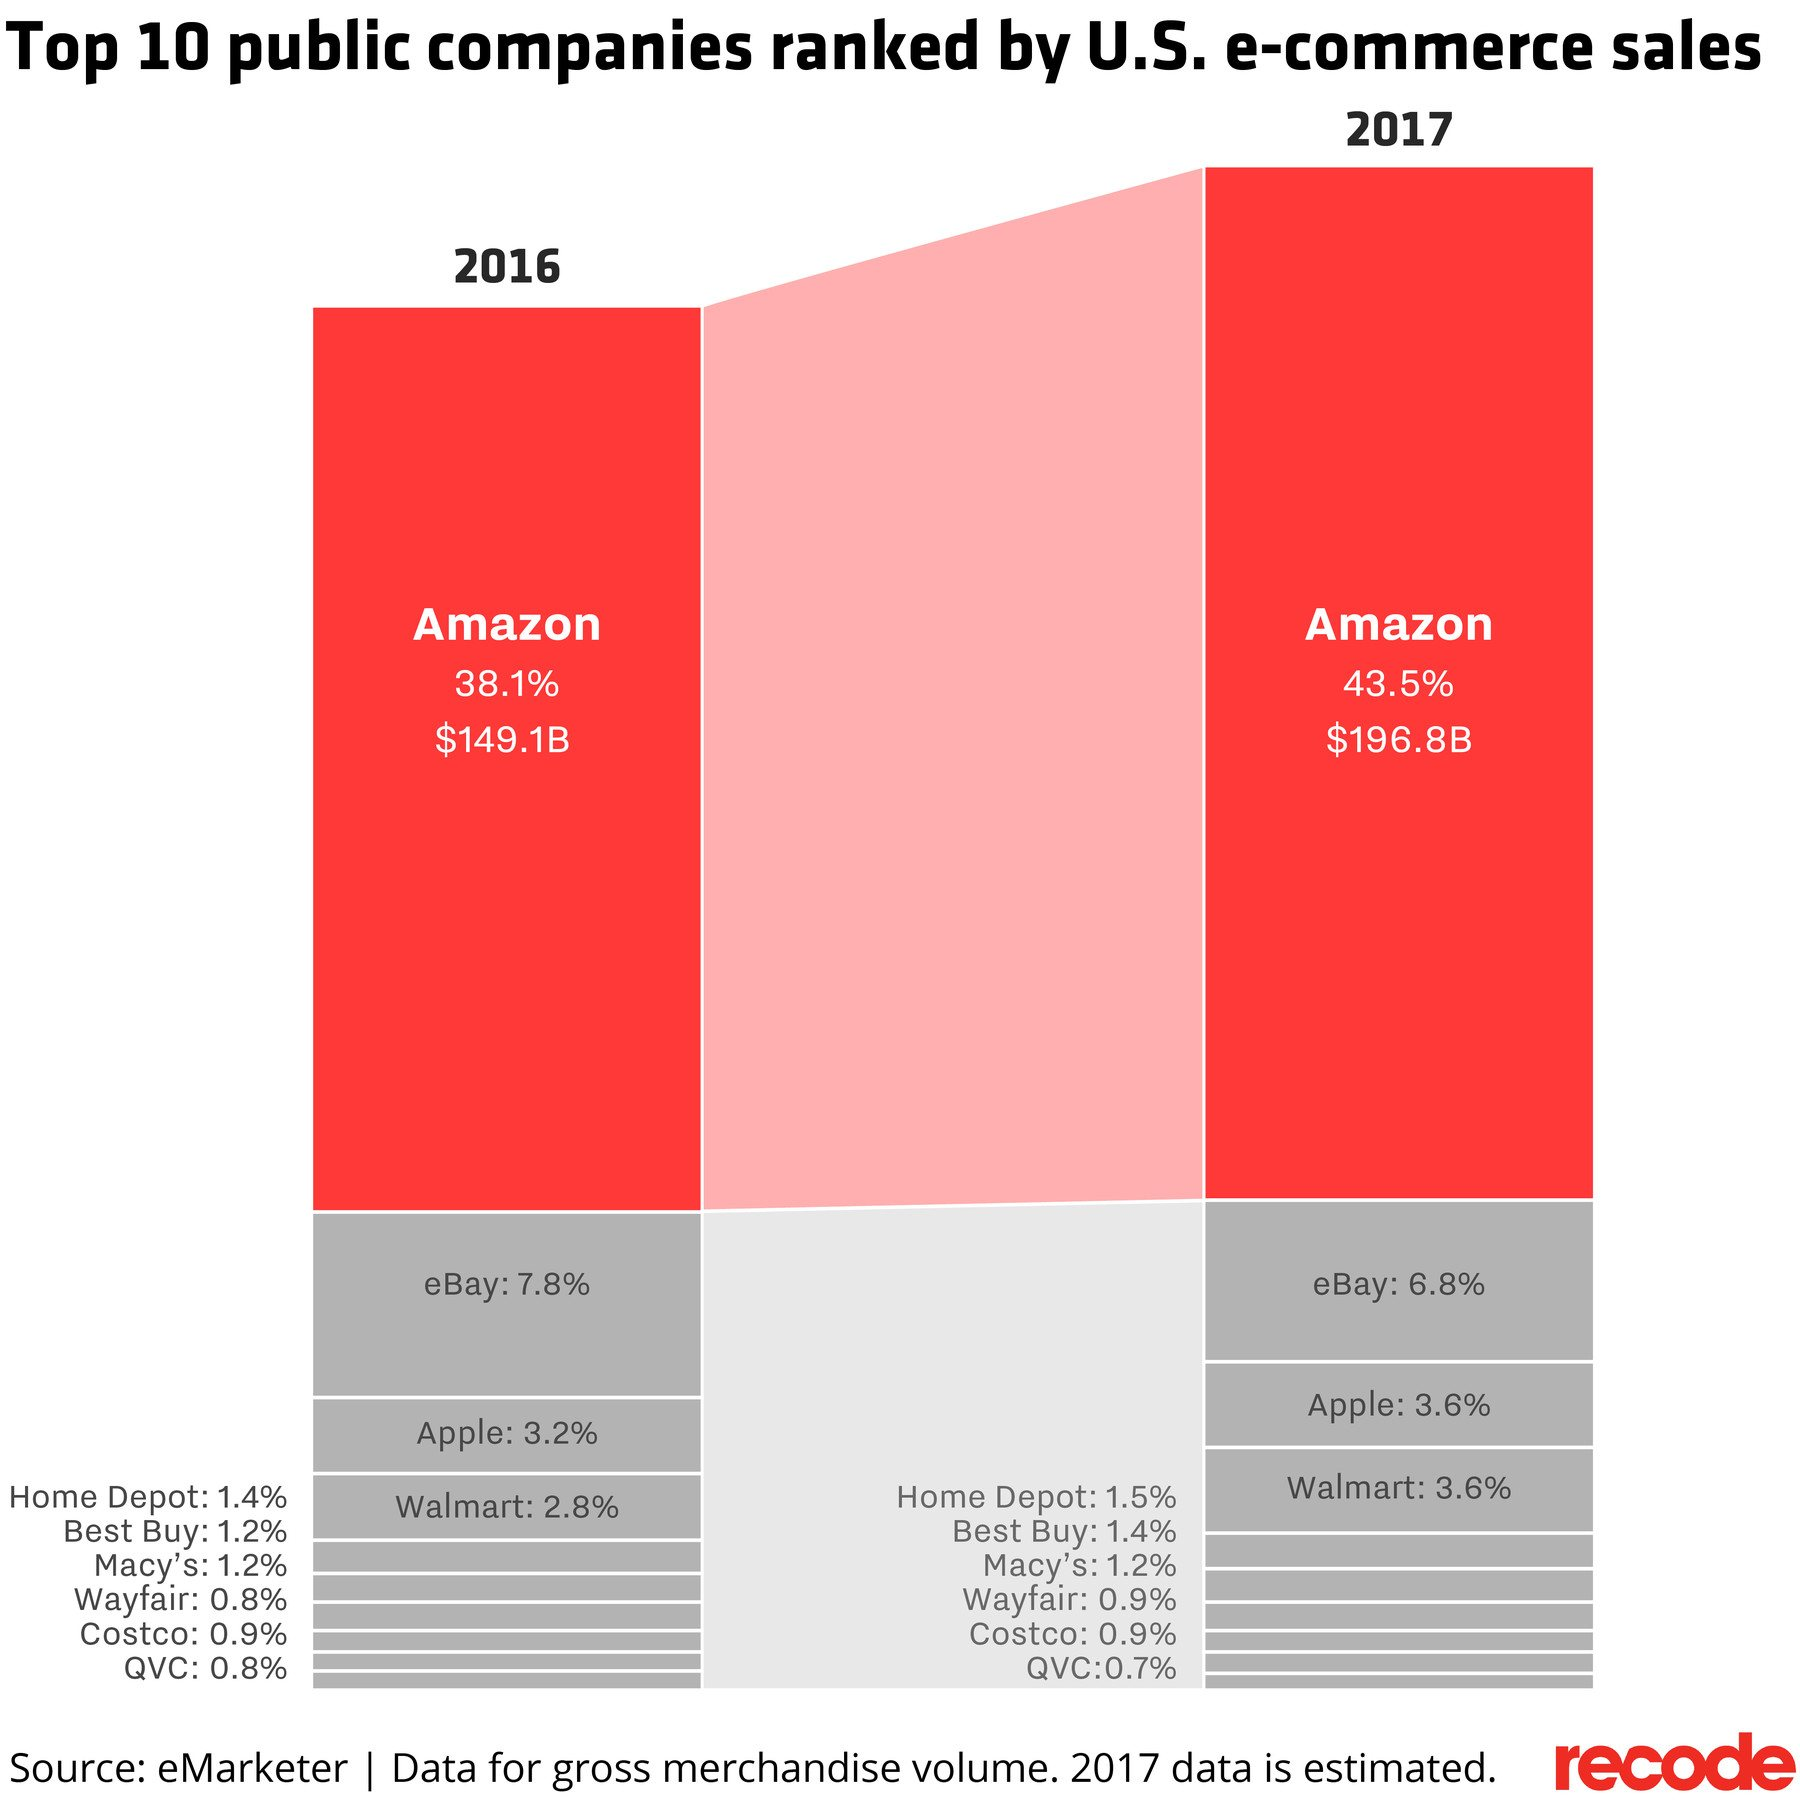 Top 10 public companies ranked by US e-commerce sales